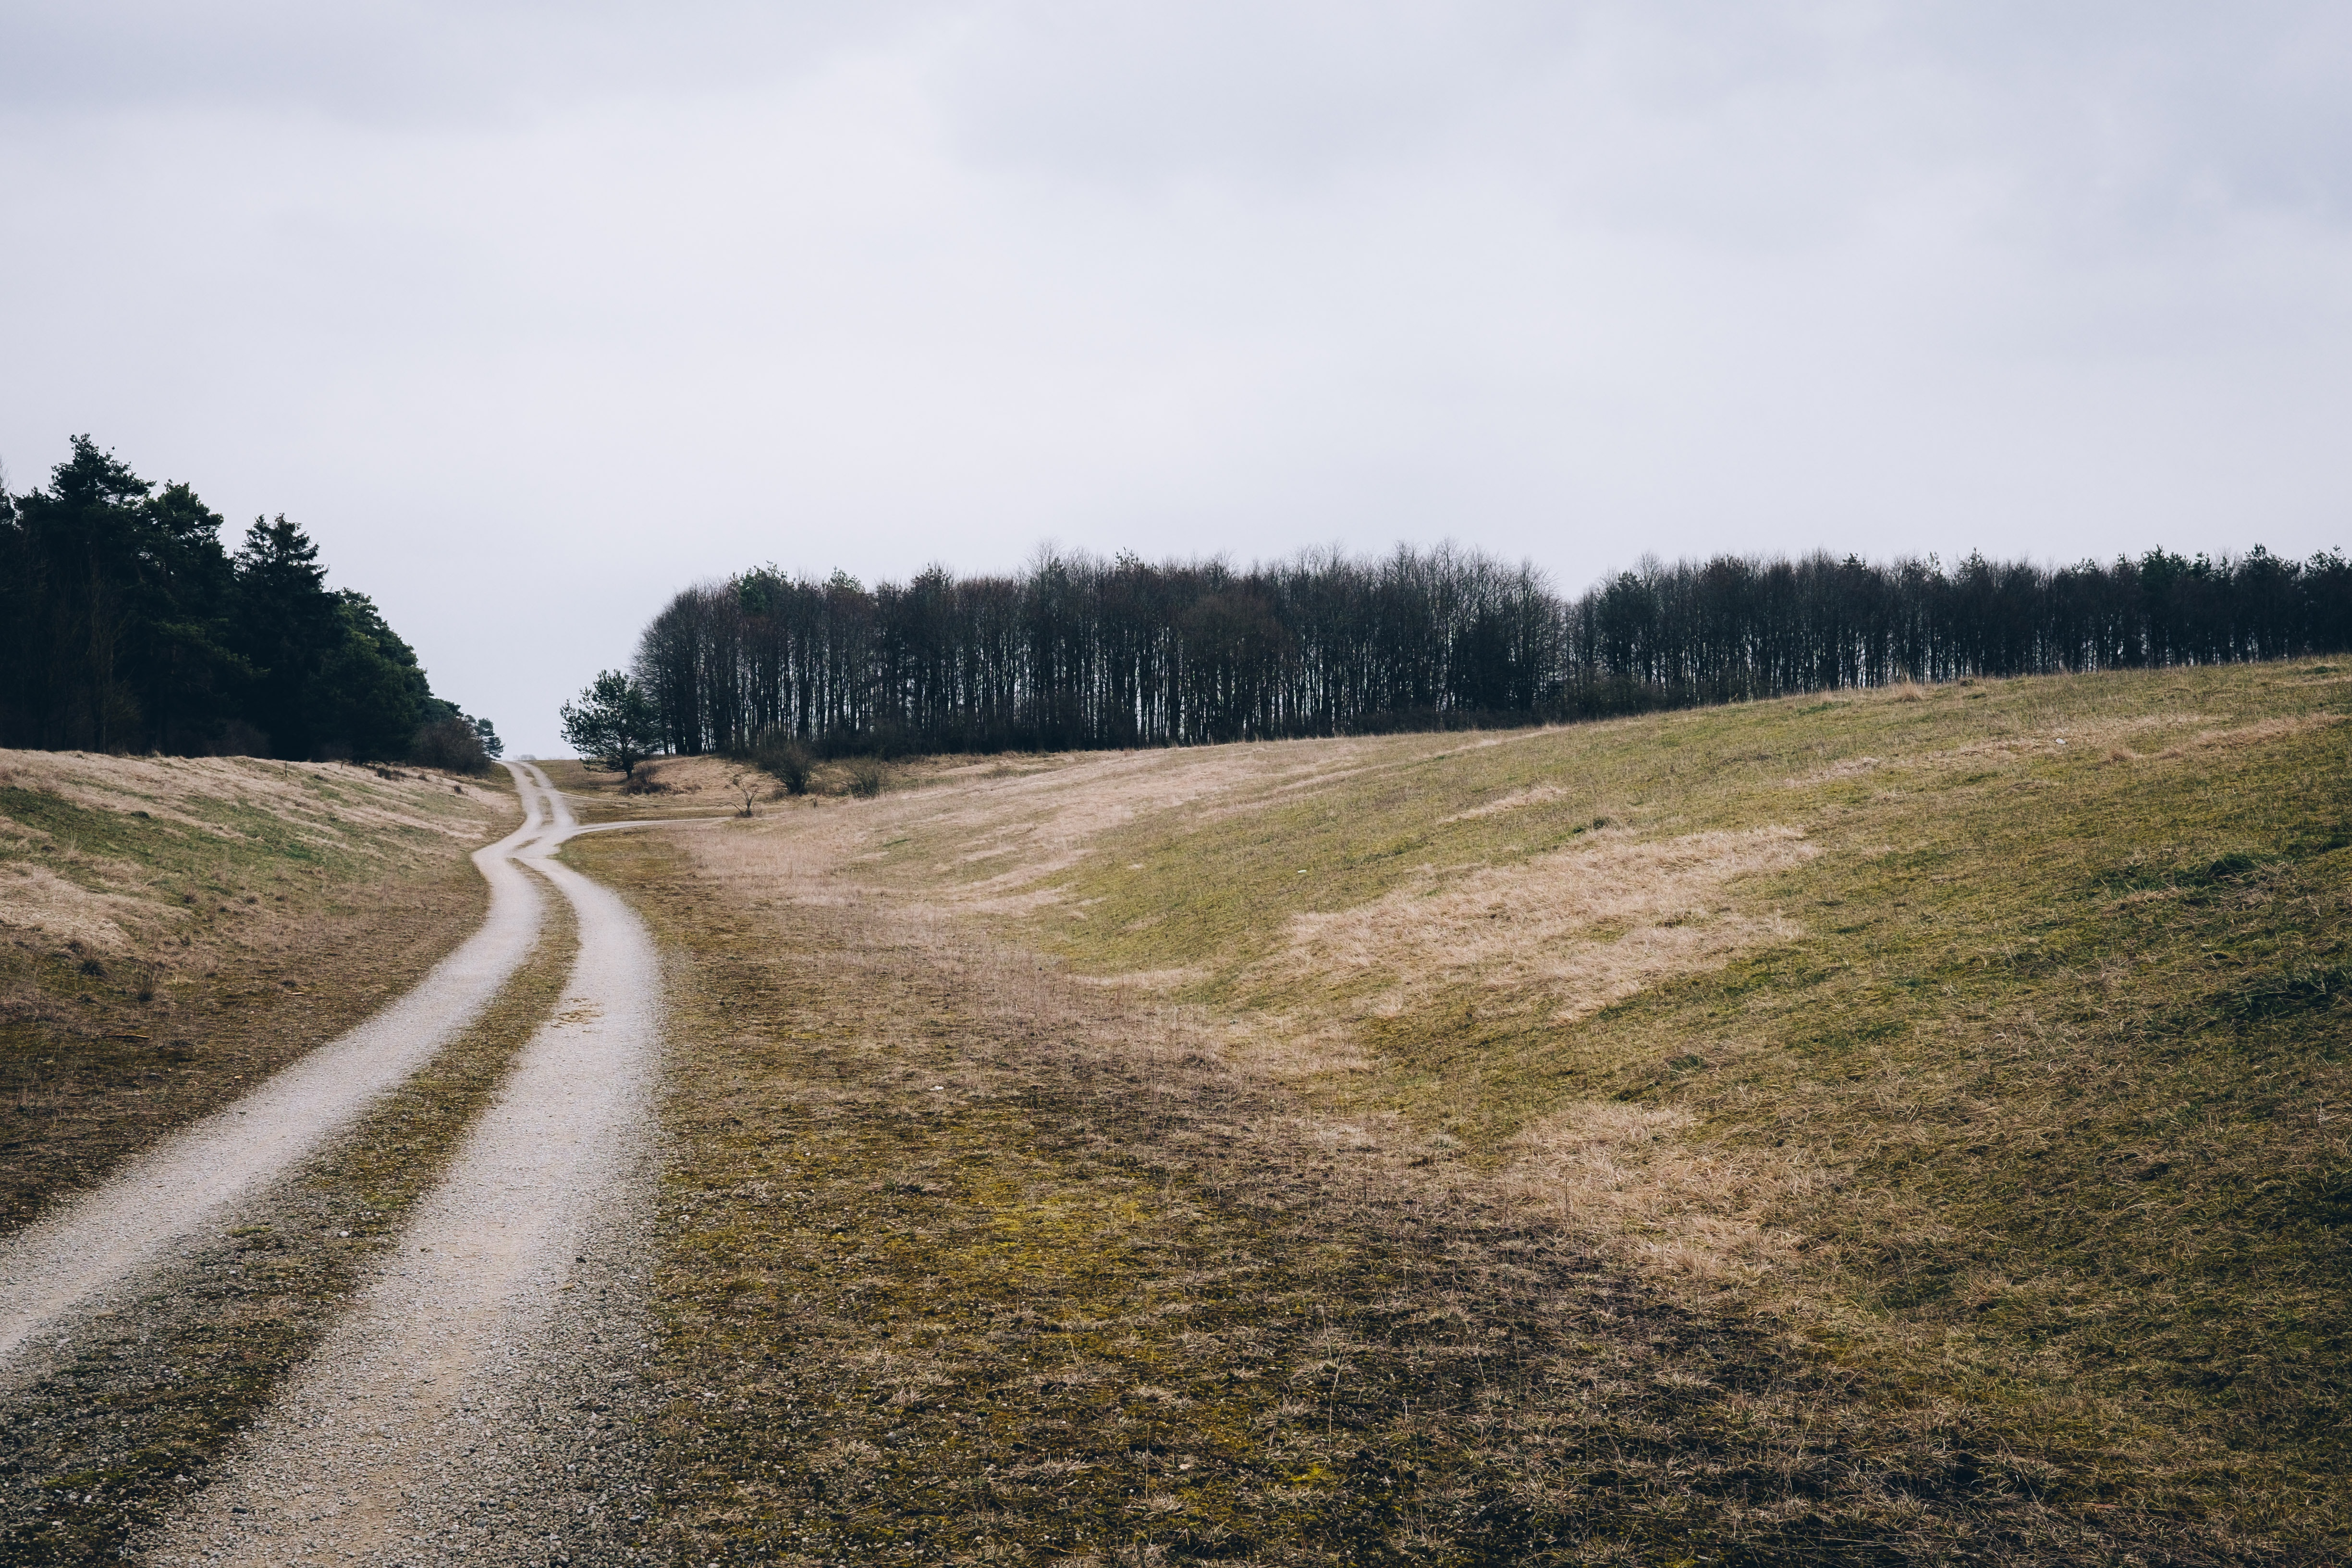 A dirt path in a rural area near a forest in Bavaria